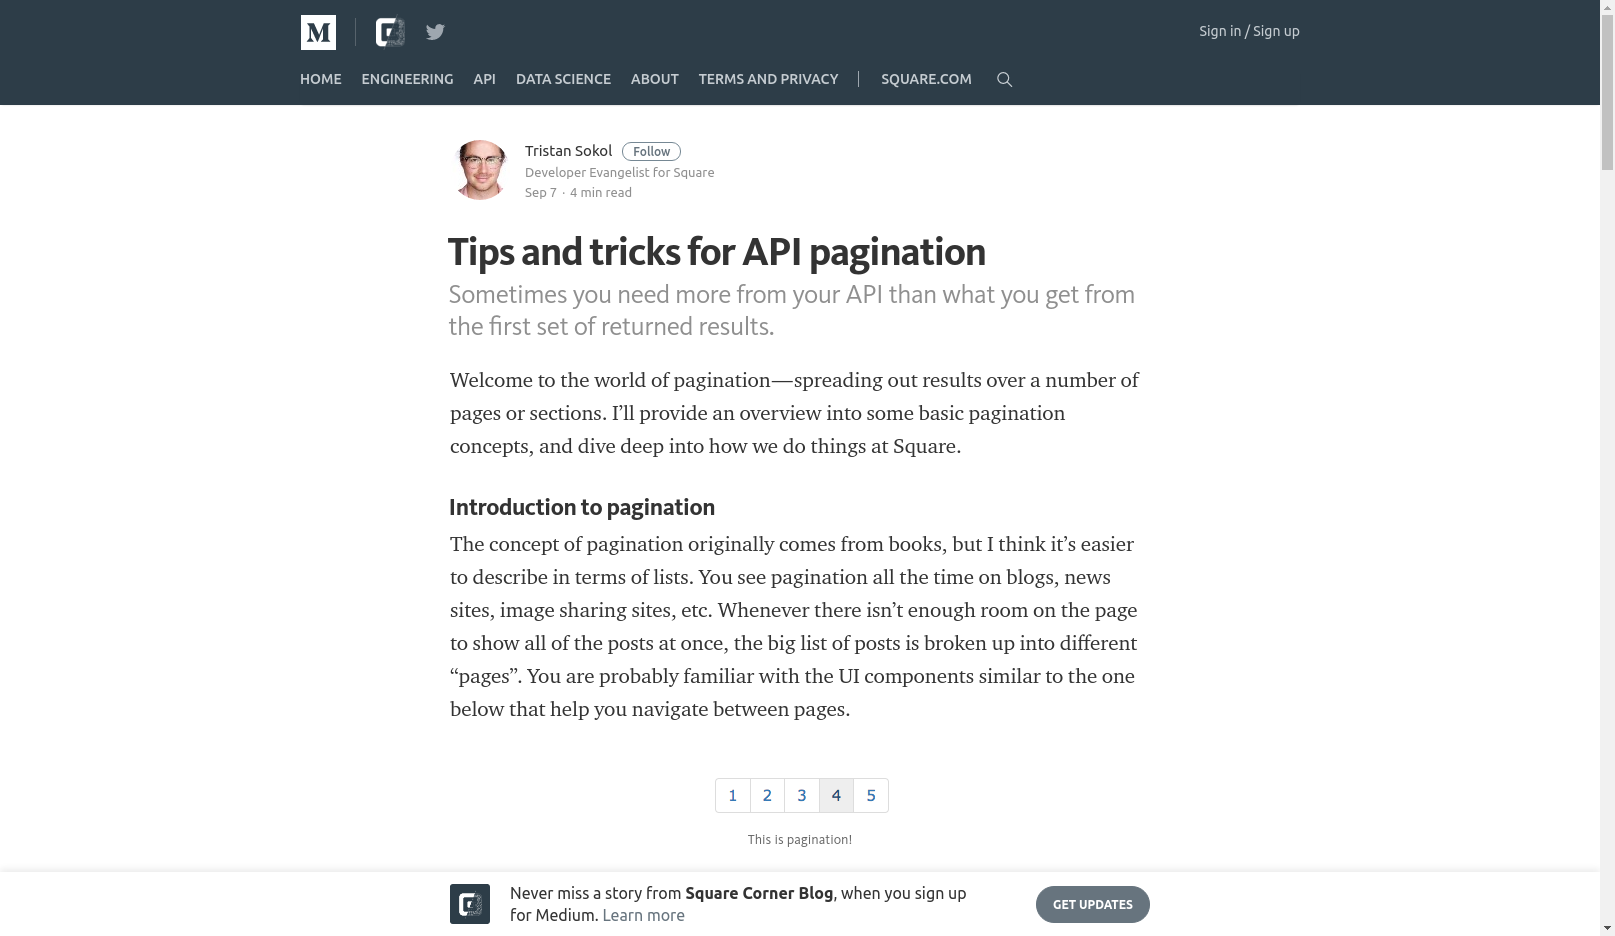 Tips and tricks for API pagination